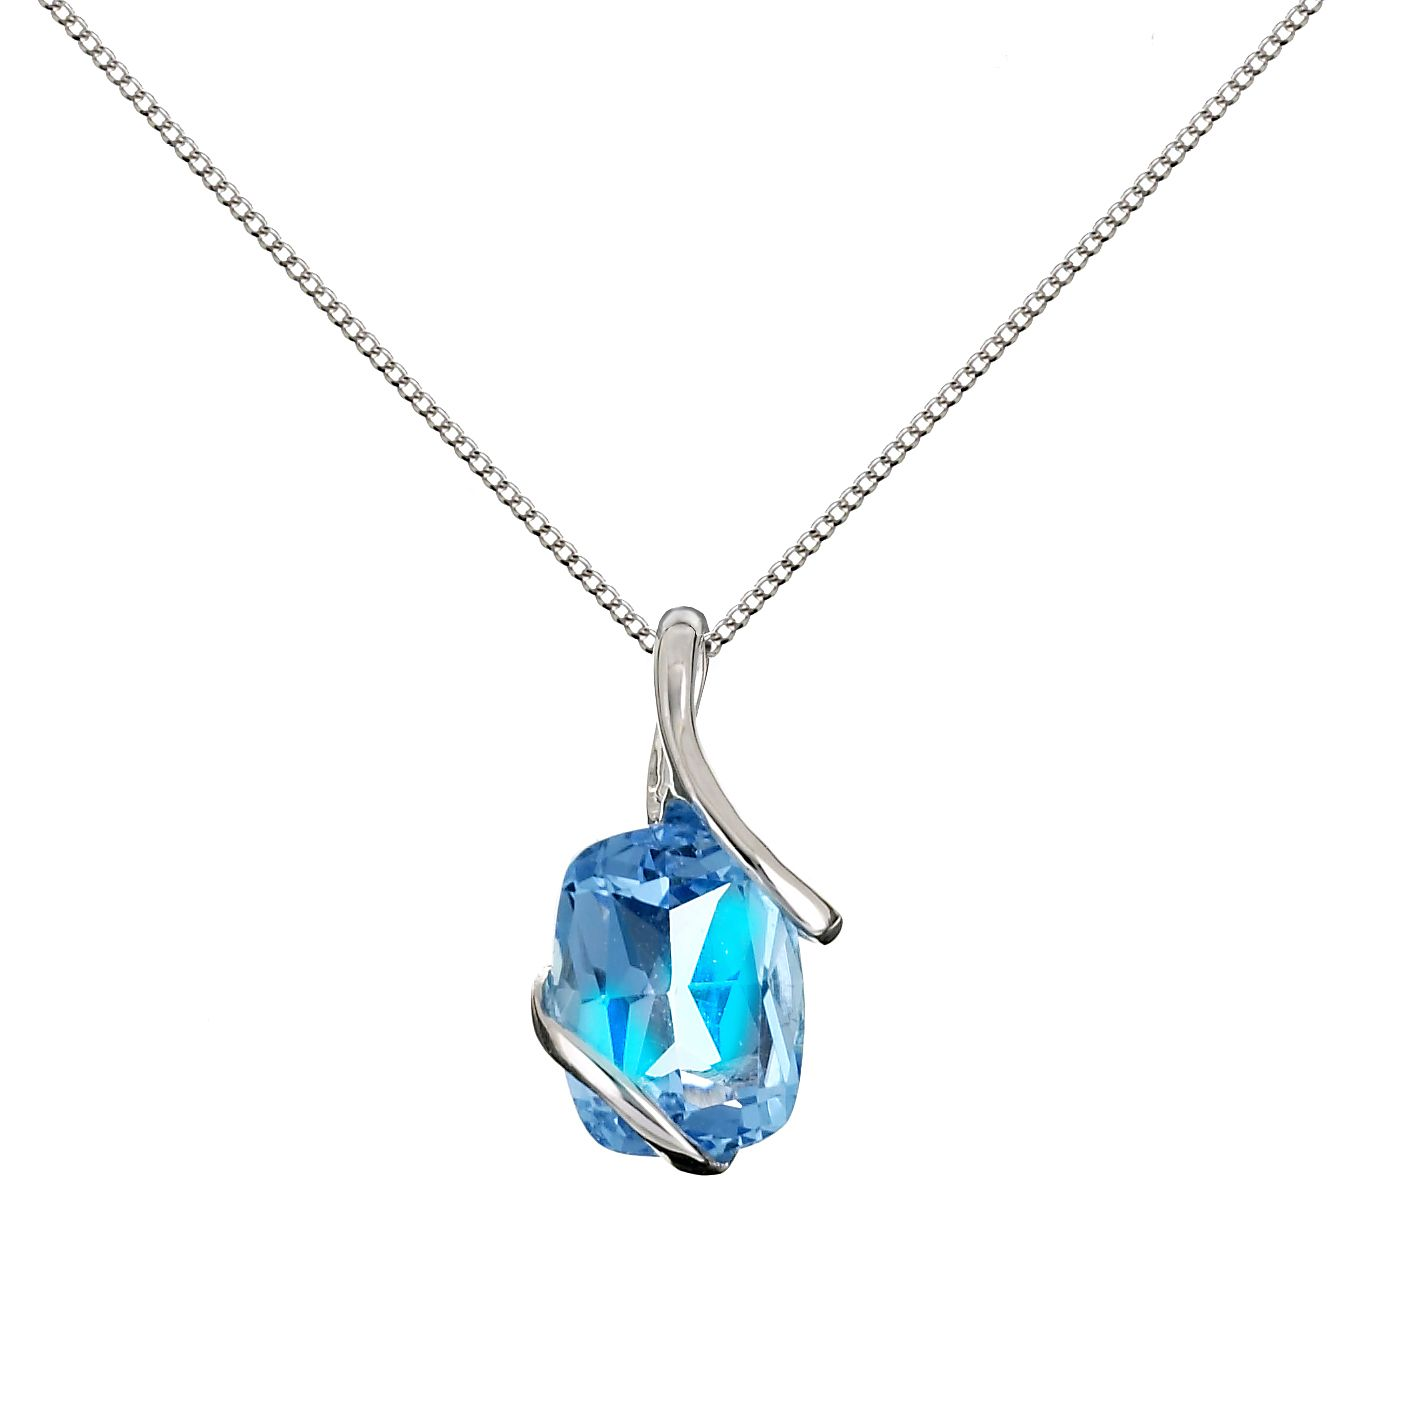 9ct white gold topaz pendant necklace hmuel exclusive 9ct white gold topaz pendant necklace mozeypictures Gallery